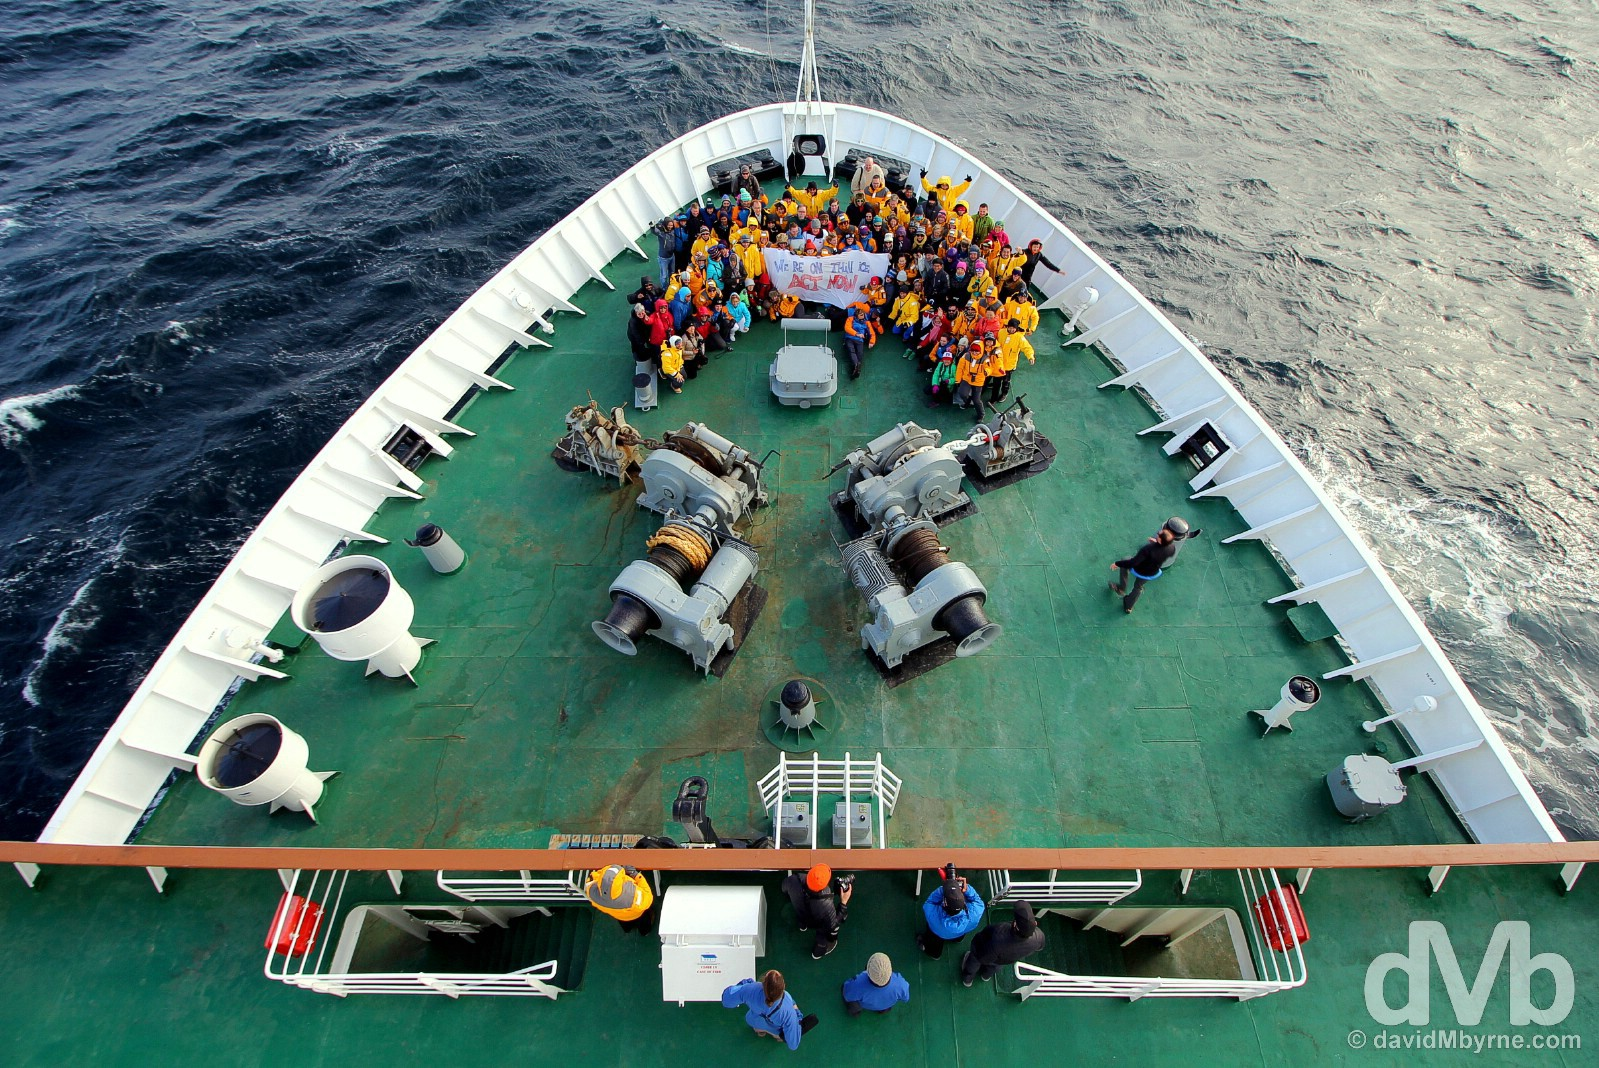 The message for COP 21, the November 30-December 12 2015 United Nations Climate Change Conference in Paris, is simple - We're on Thin Ice. On the M/V Ocean Endeavour in the Bransfield Strait, Antarctica. November 29, 2015.